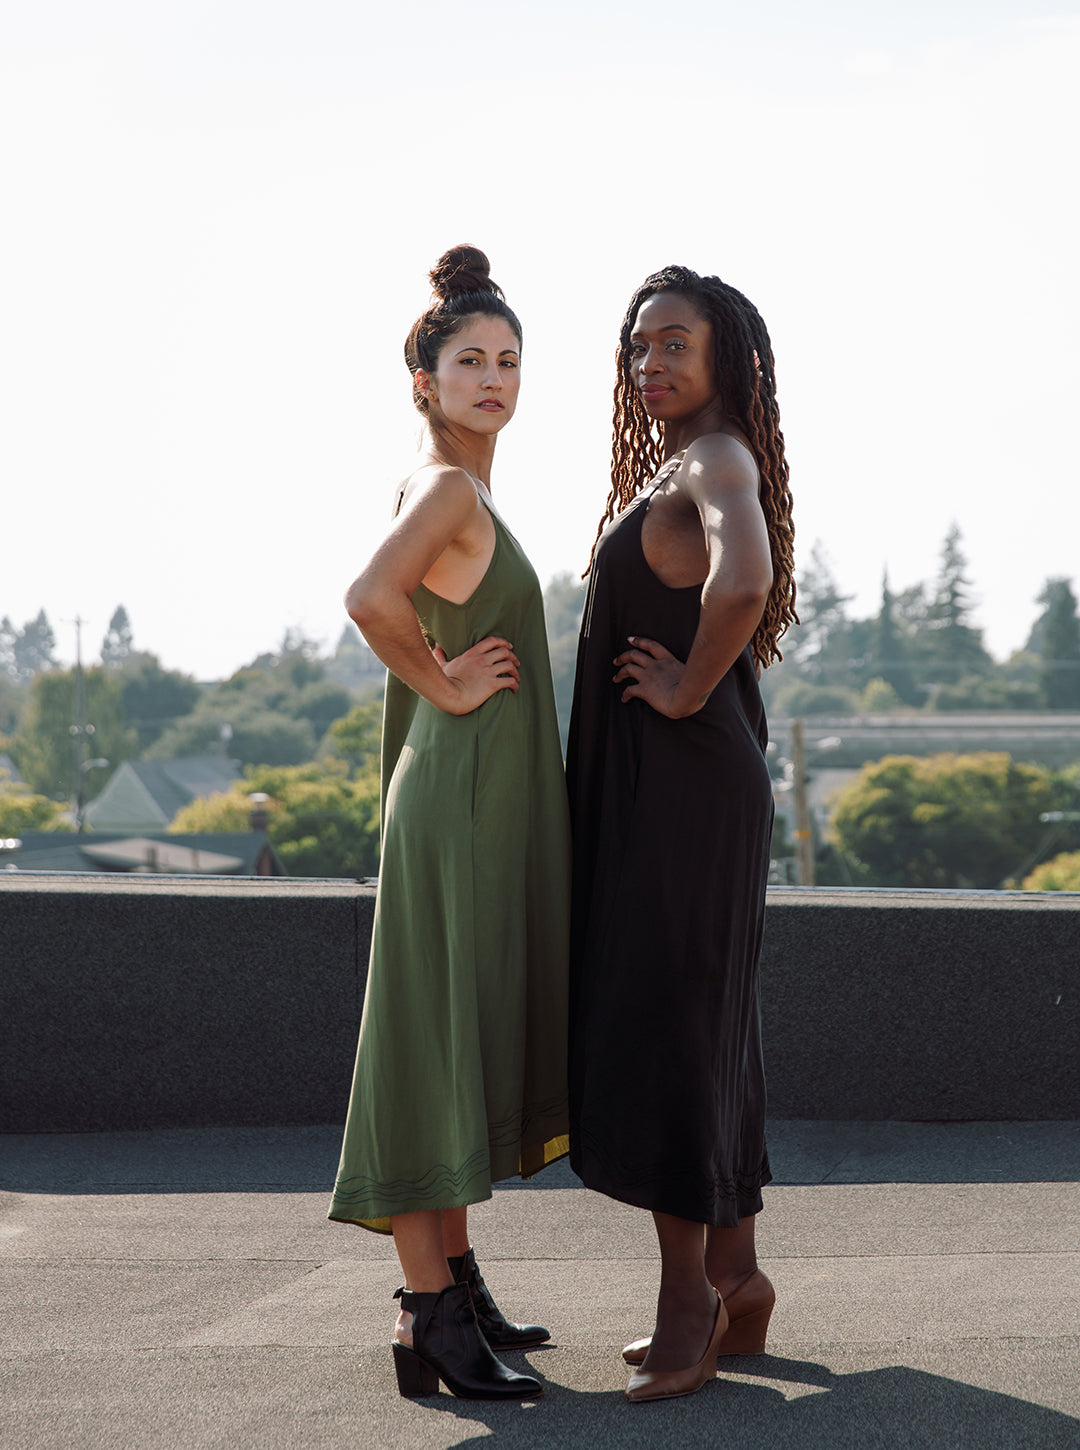 Standing strong in our maeve dress